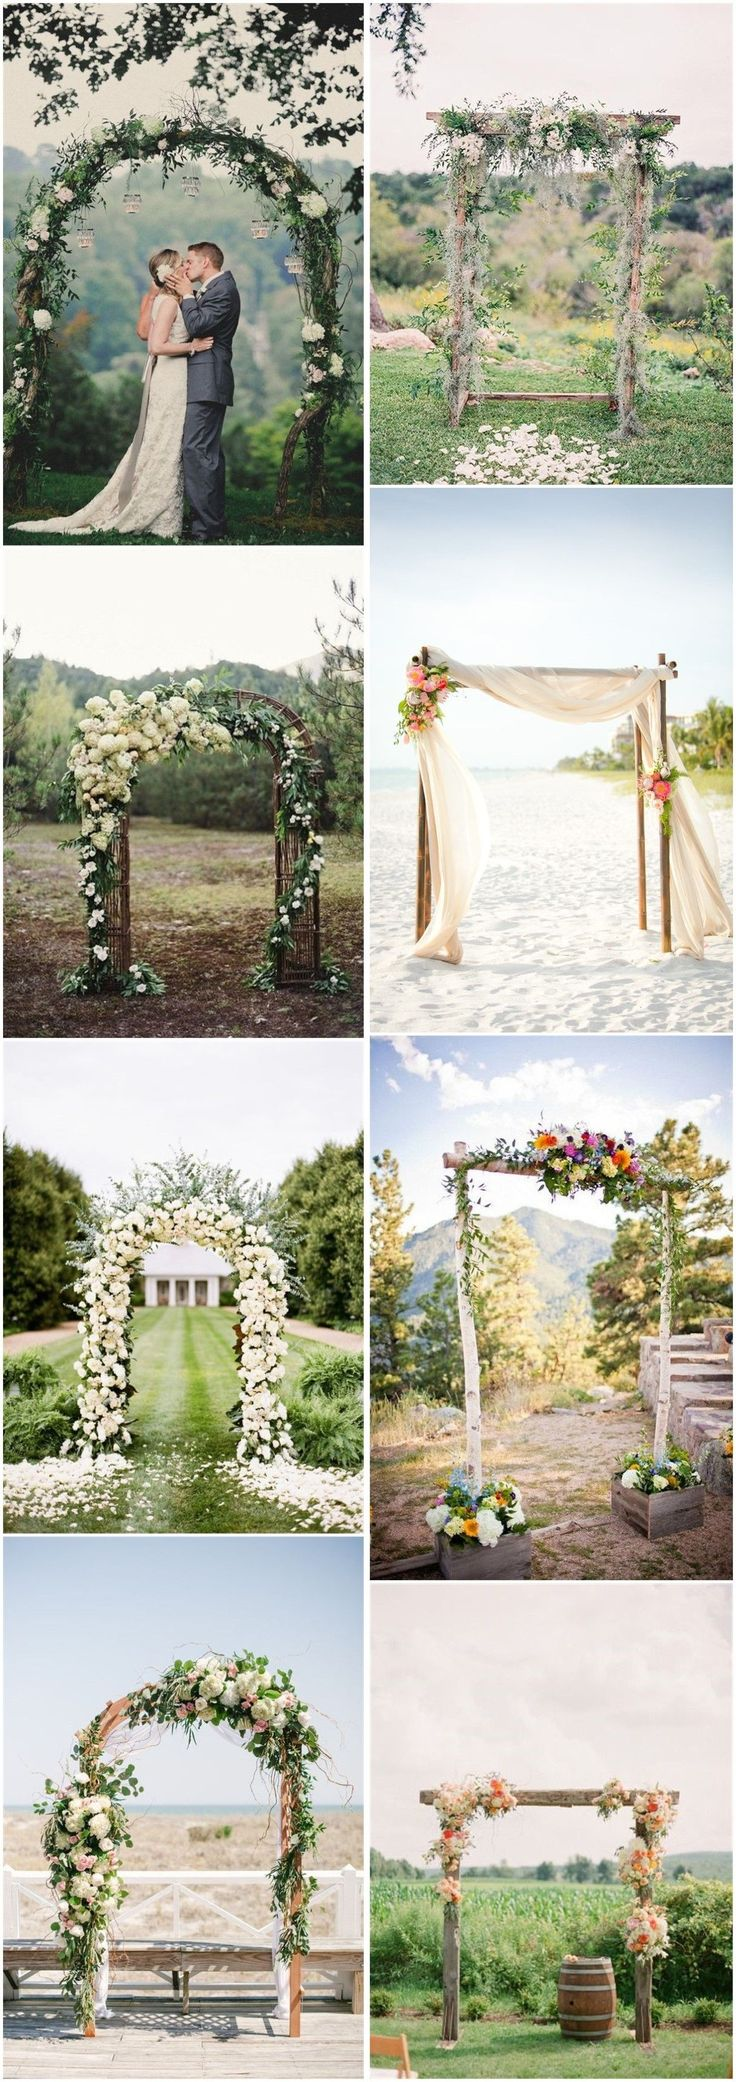 25+ Best Ideas About Rustic Wedding Arches On Pinterest